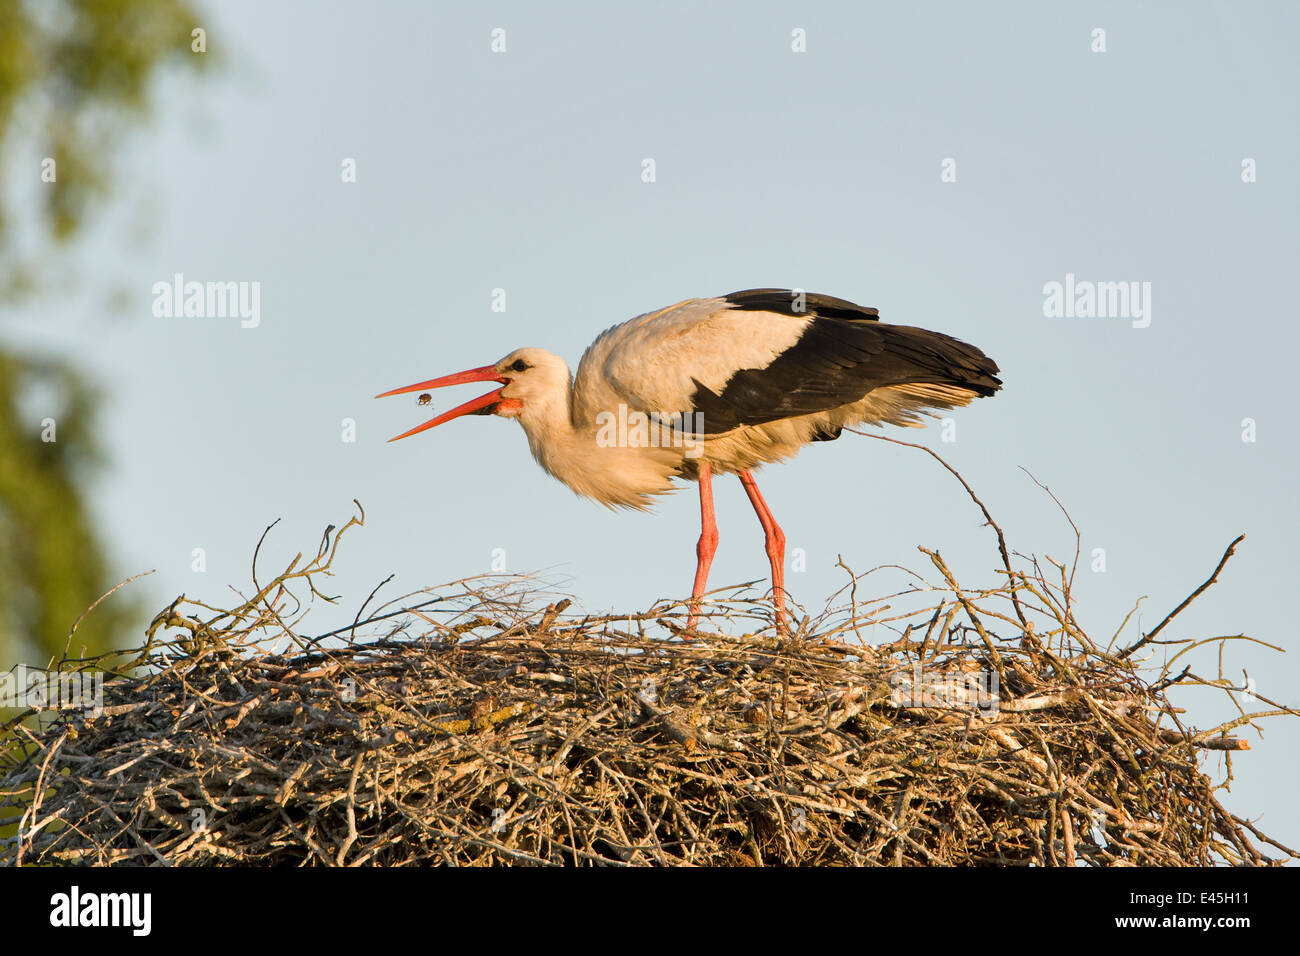 White stork (Ciconia ciconia) adult in breeding plumage, tossing food into beak to feed, Lithuania, May 2009 - Stock Image